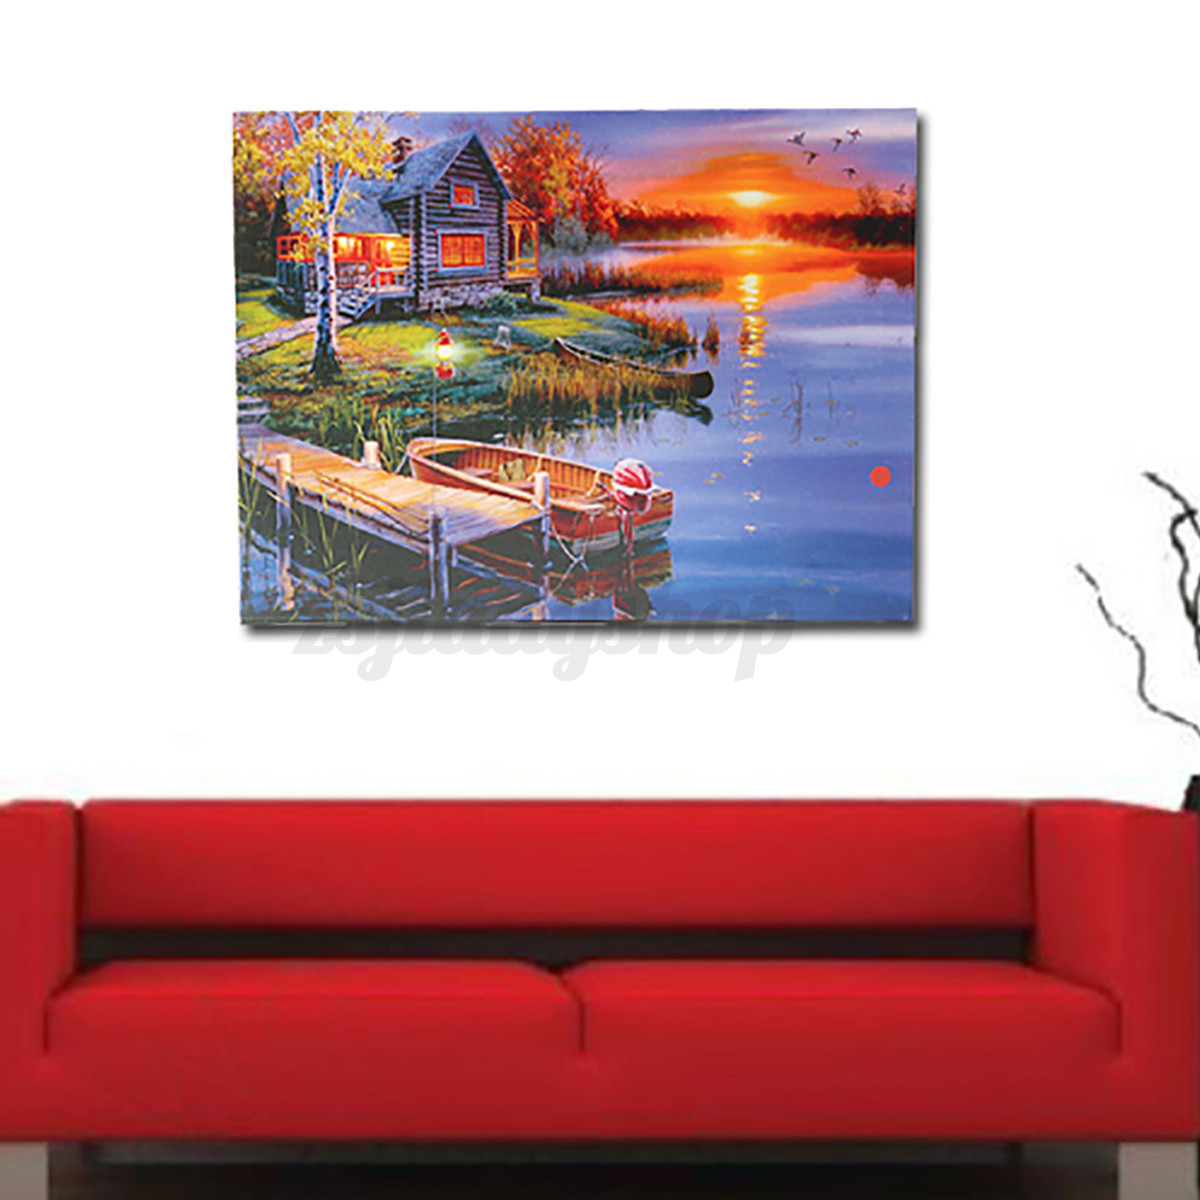 20 Battery Operated LED Light Lake Cabin Canvas Print Painting Home Wall Decor eBay